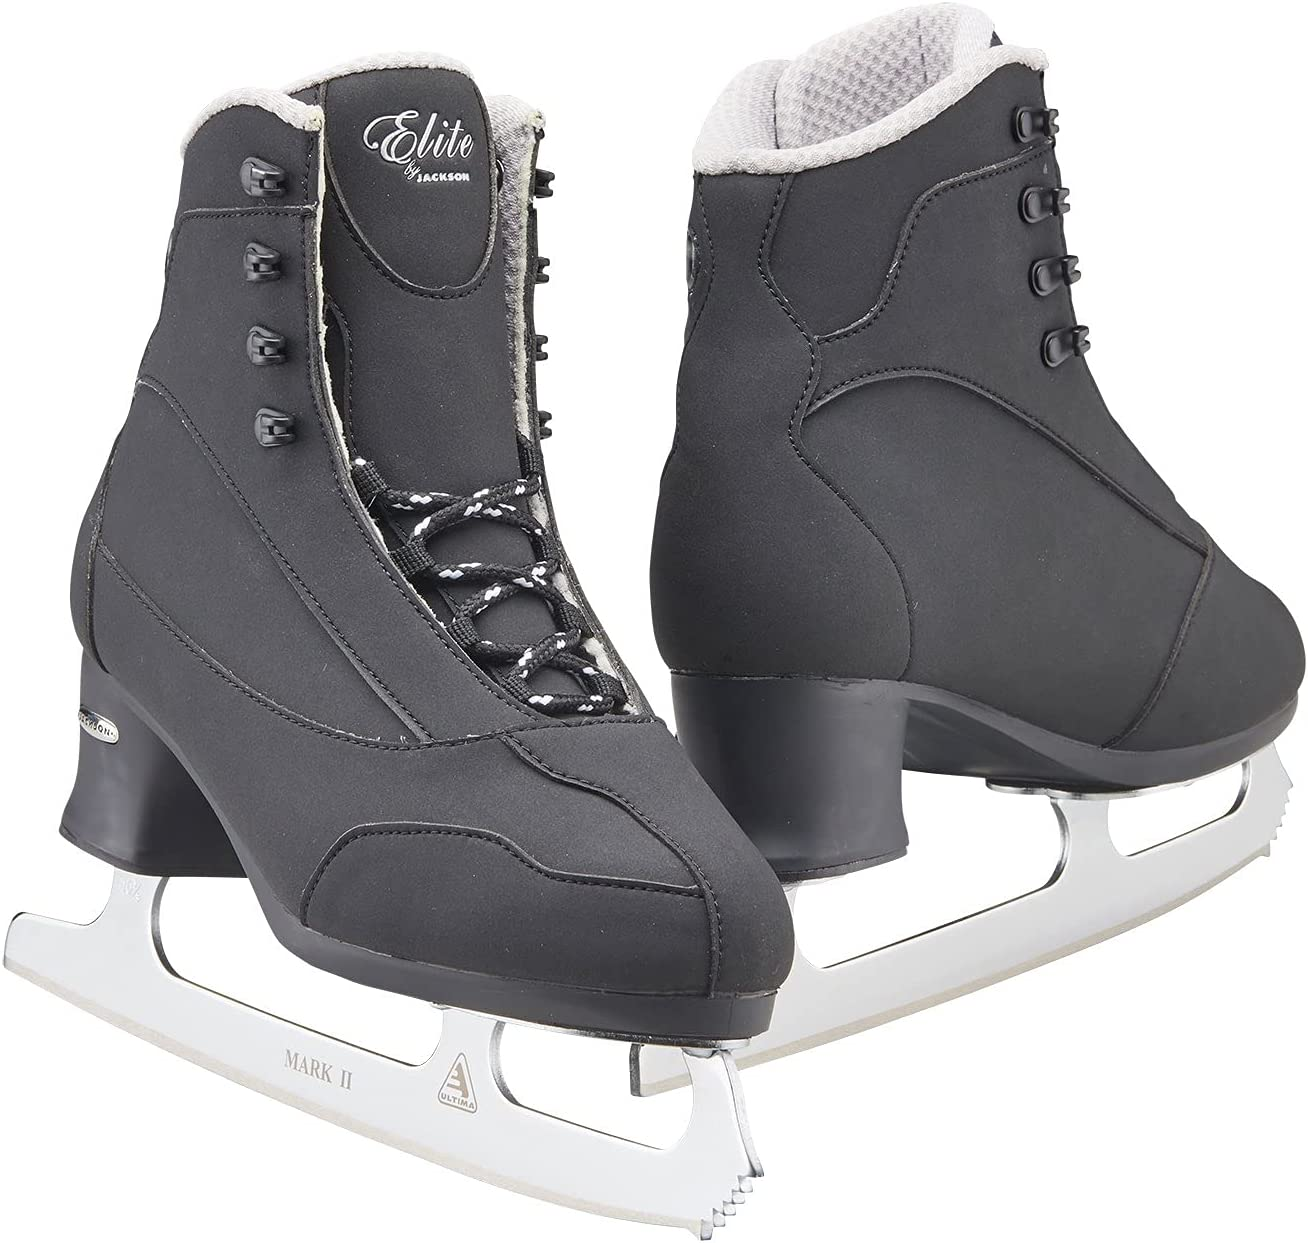 Jackson Ultima Outlet SALE New Softec Elite Womens Figure Max 67% OFF Girls Skates Ice